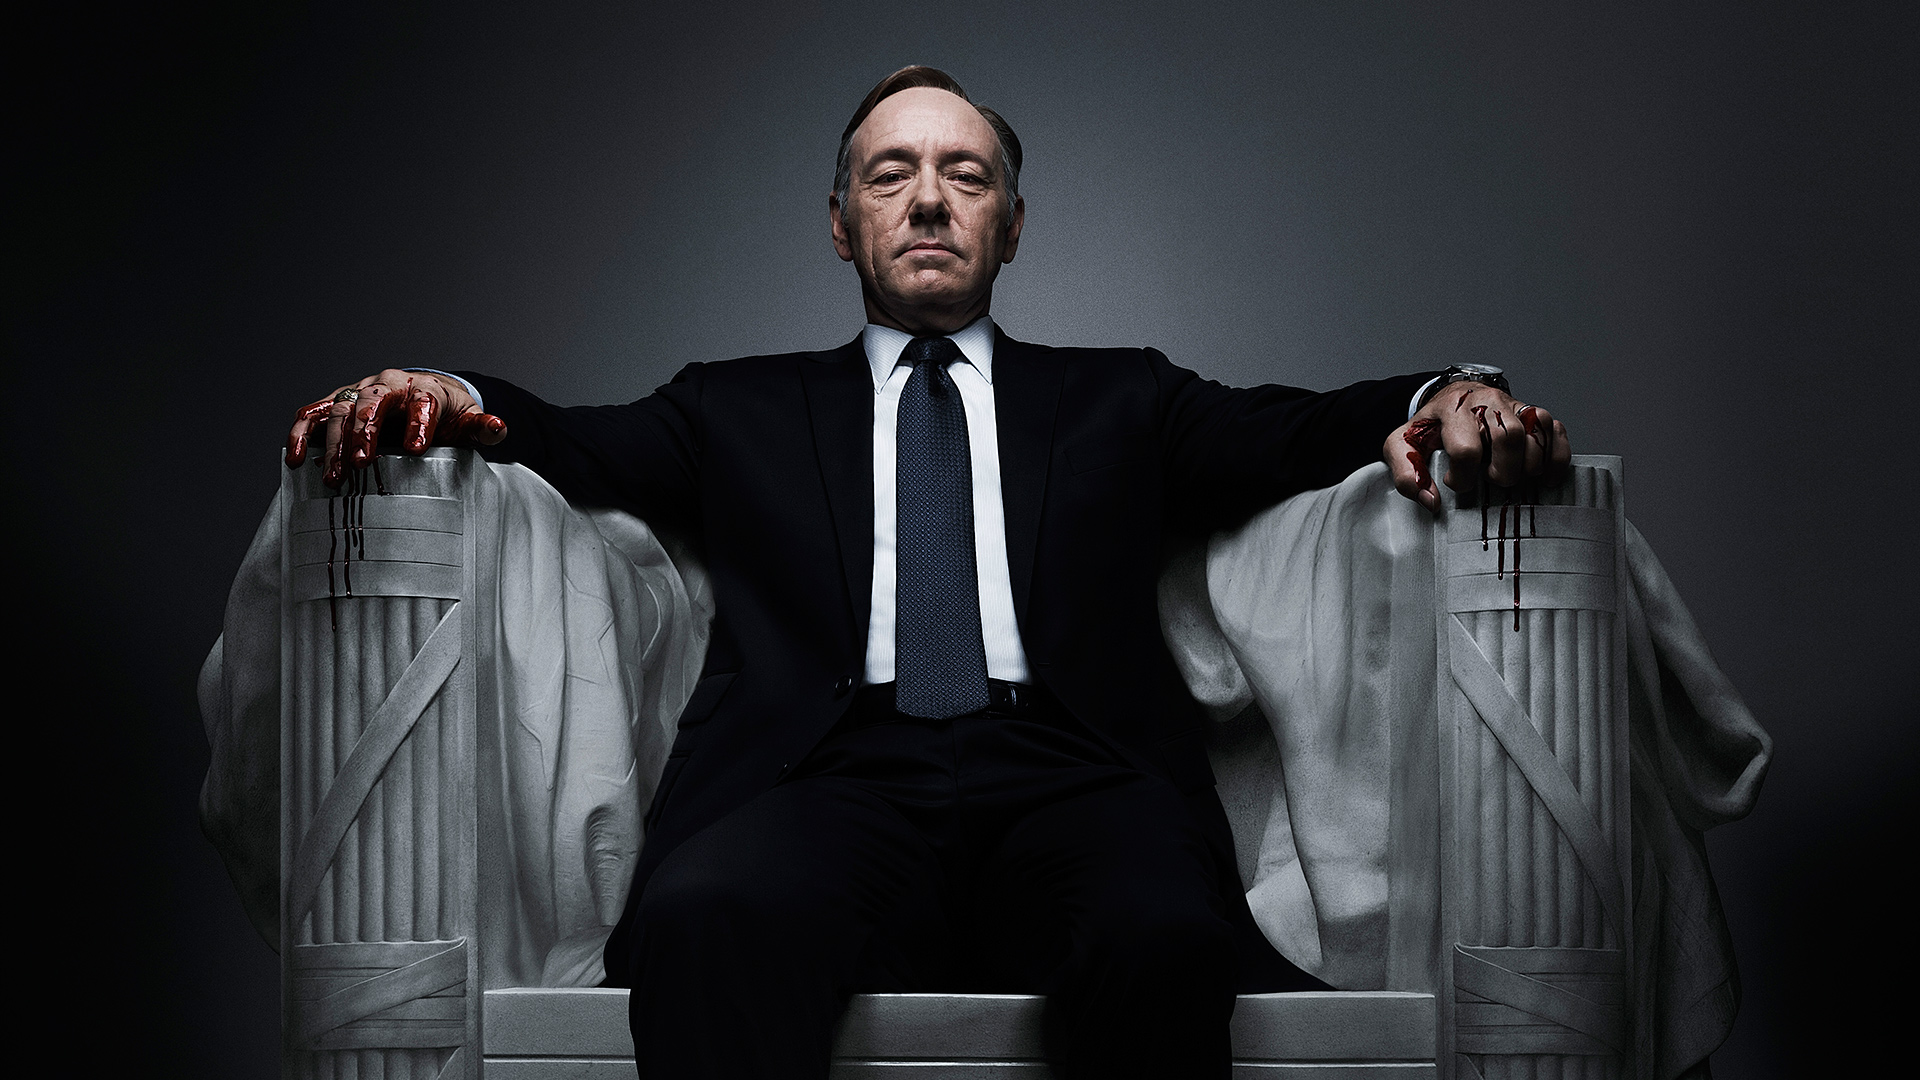 Netflix, house of cards, Political Drama, kevin spacey, movies/tv